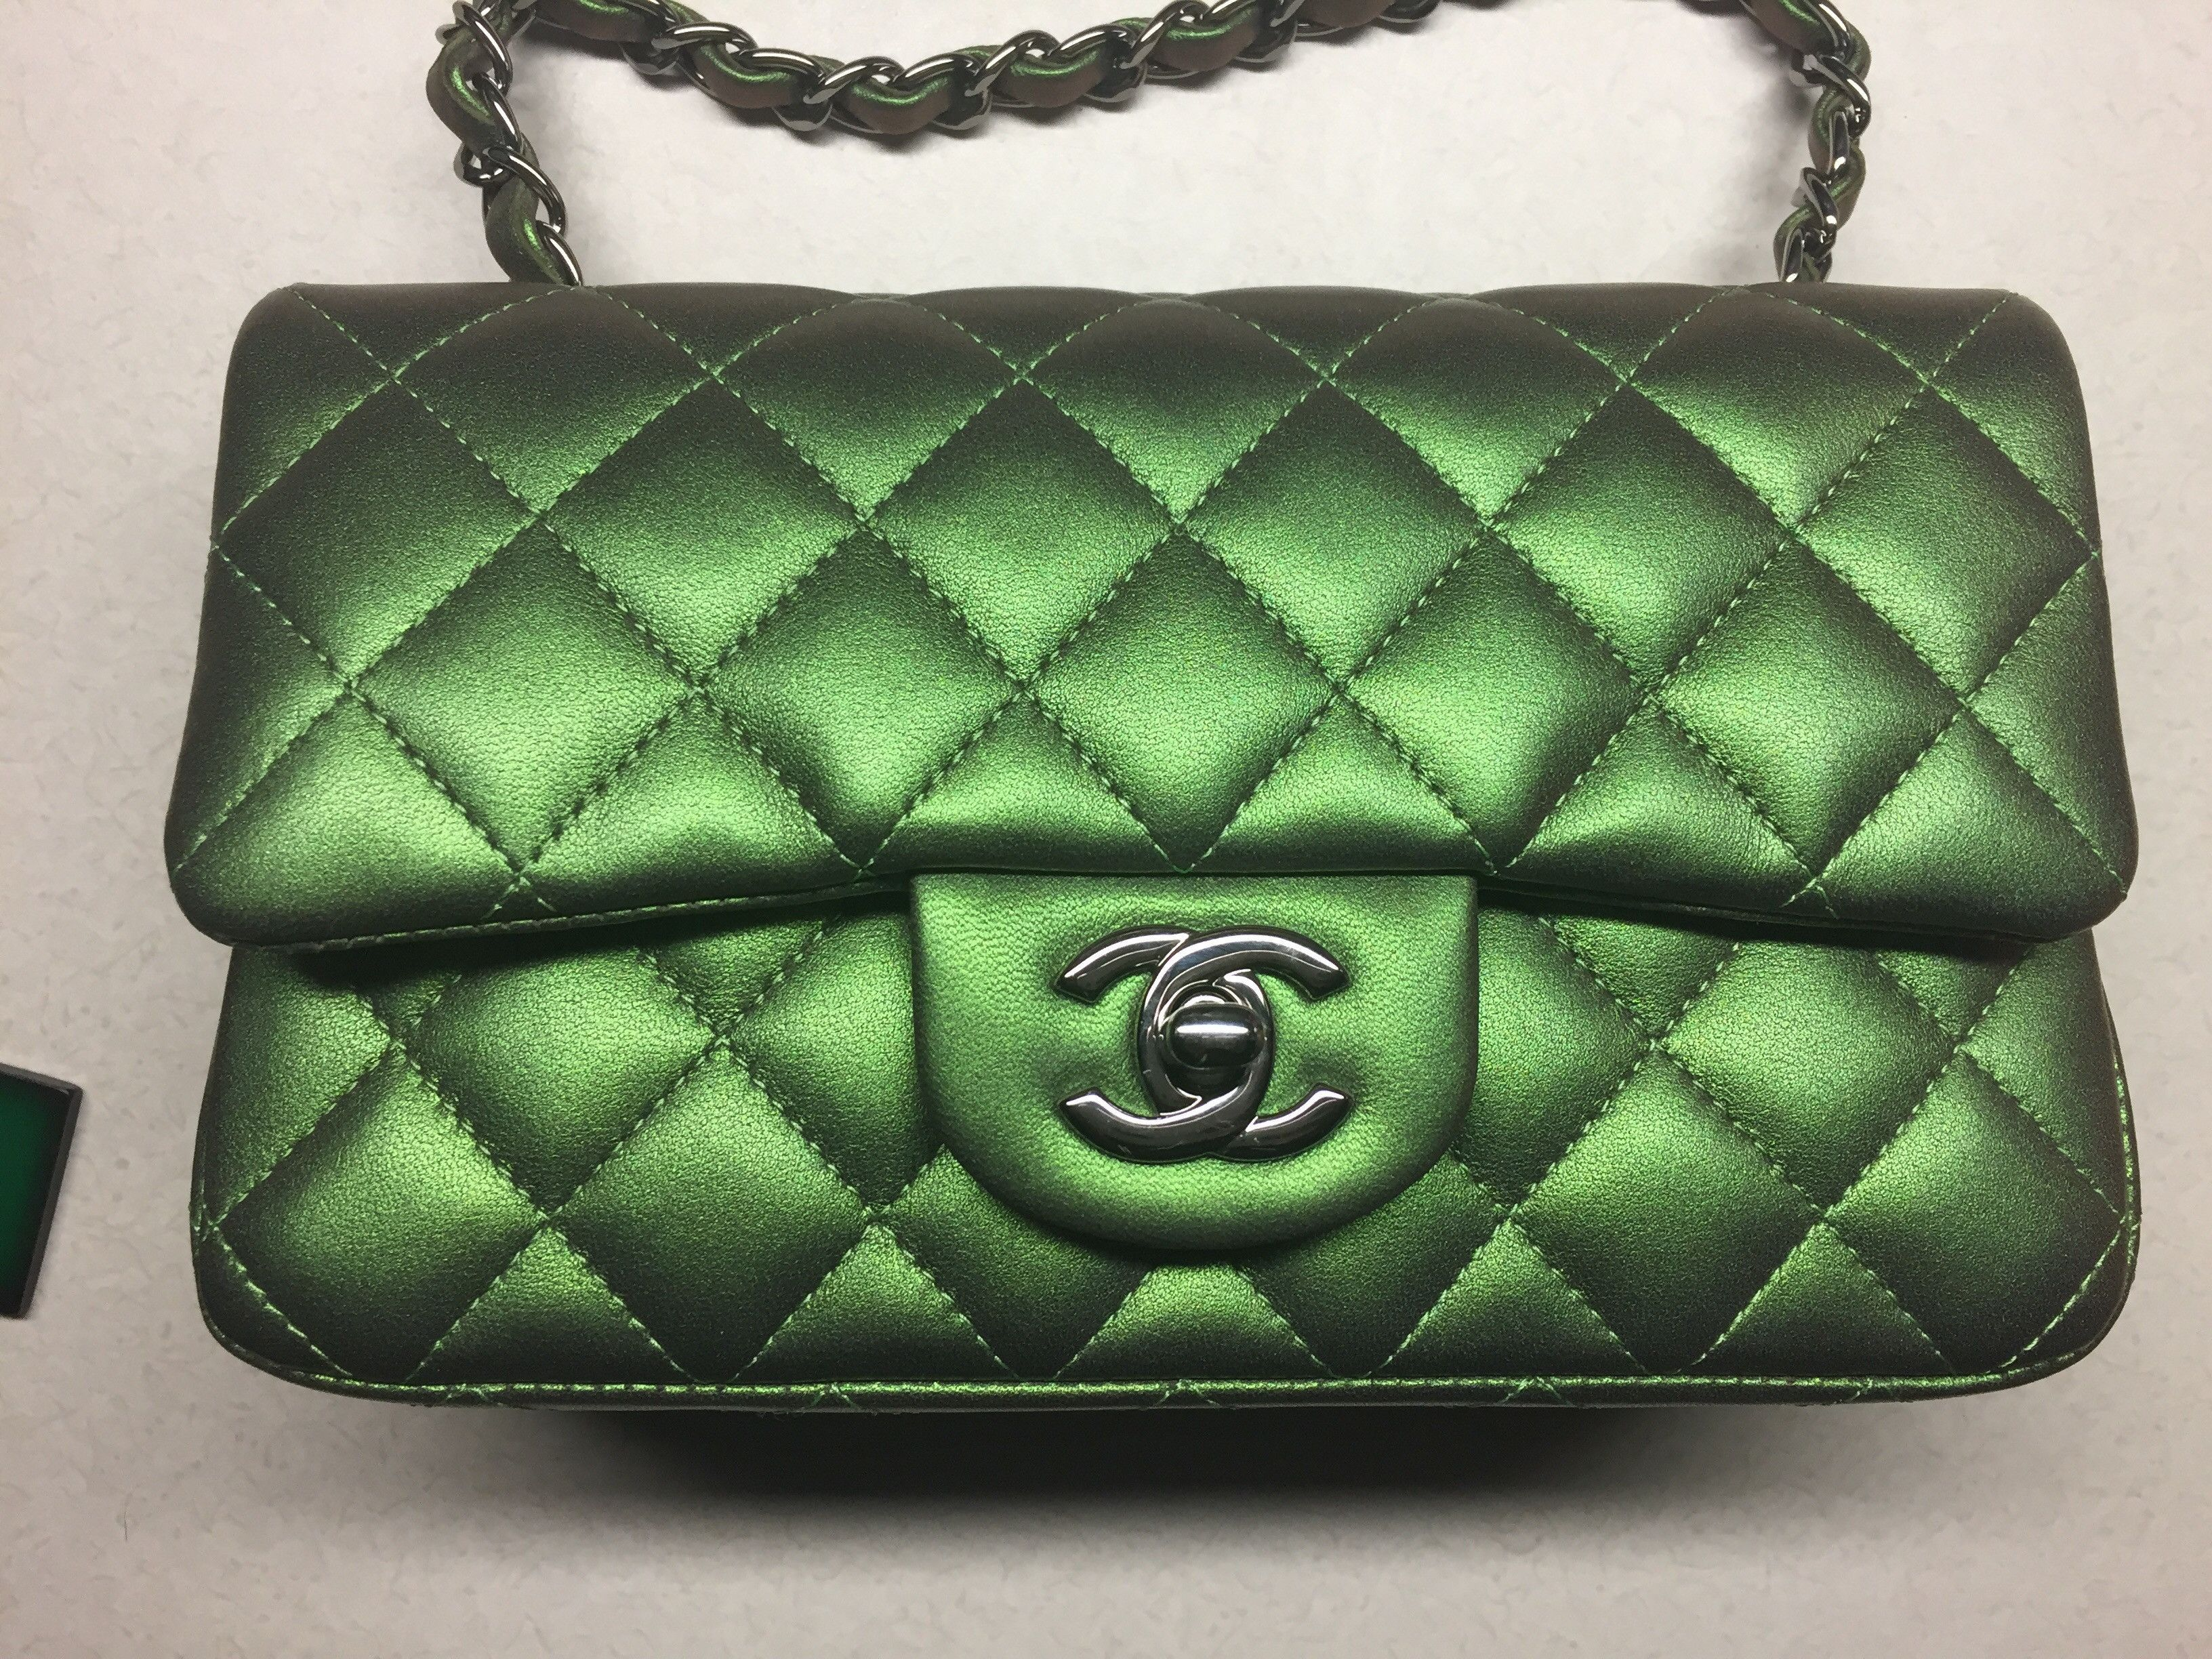 367f21c244e6 Chanel Mini Iridescent Green Classic Leather Metallic Handbag Cross Body Bag